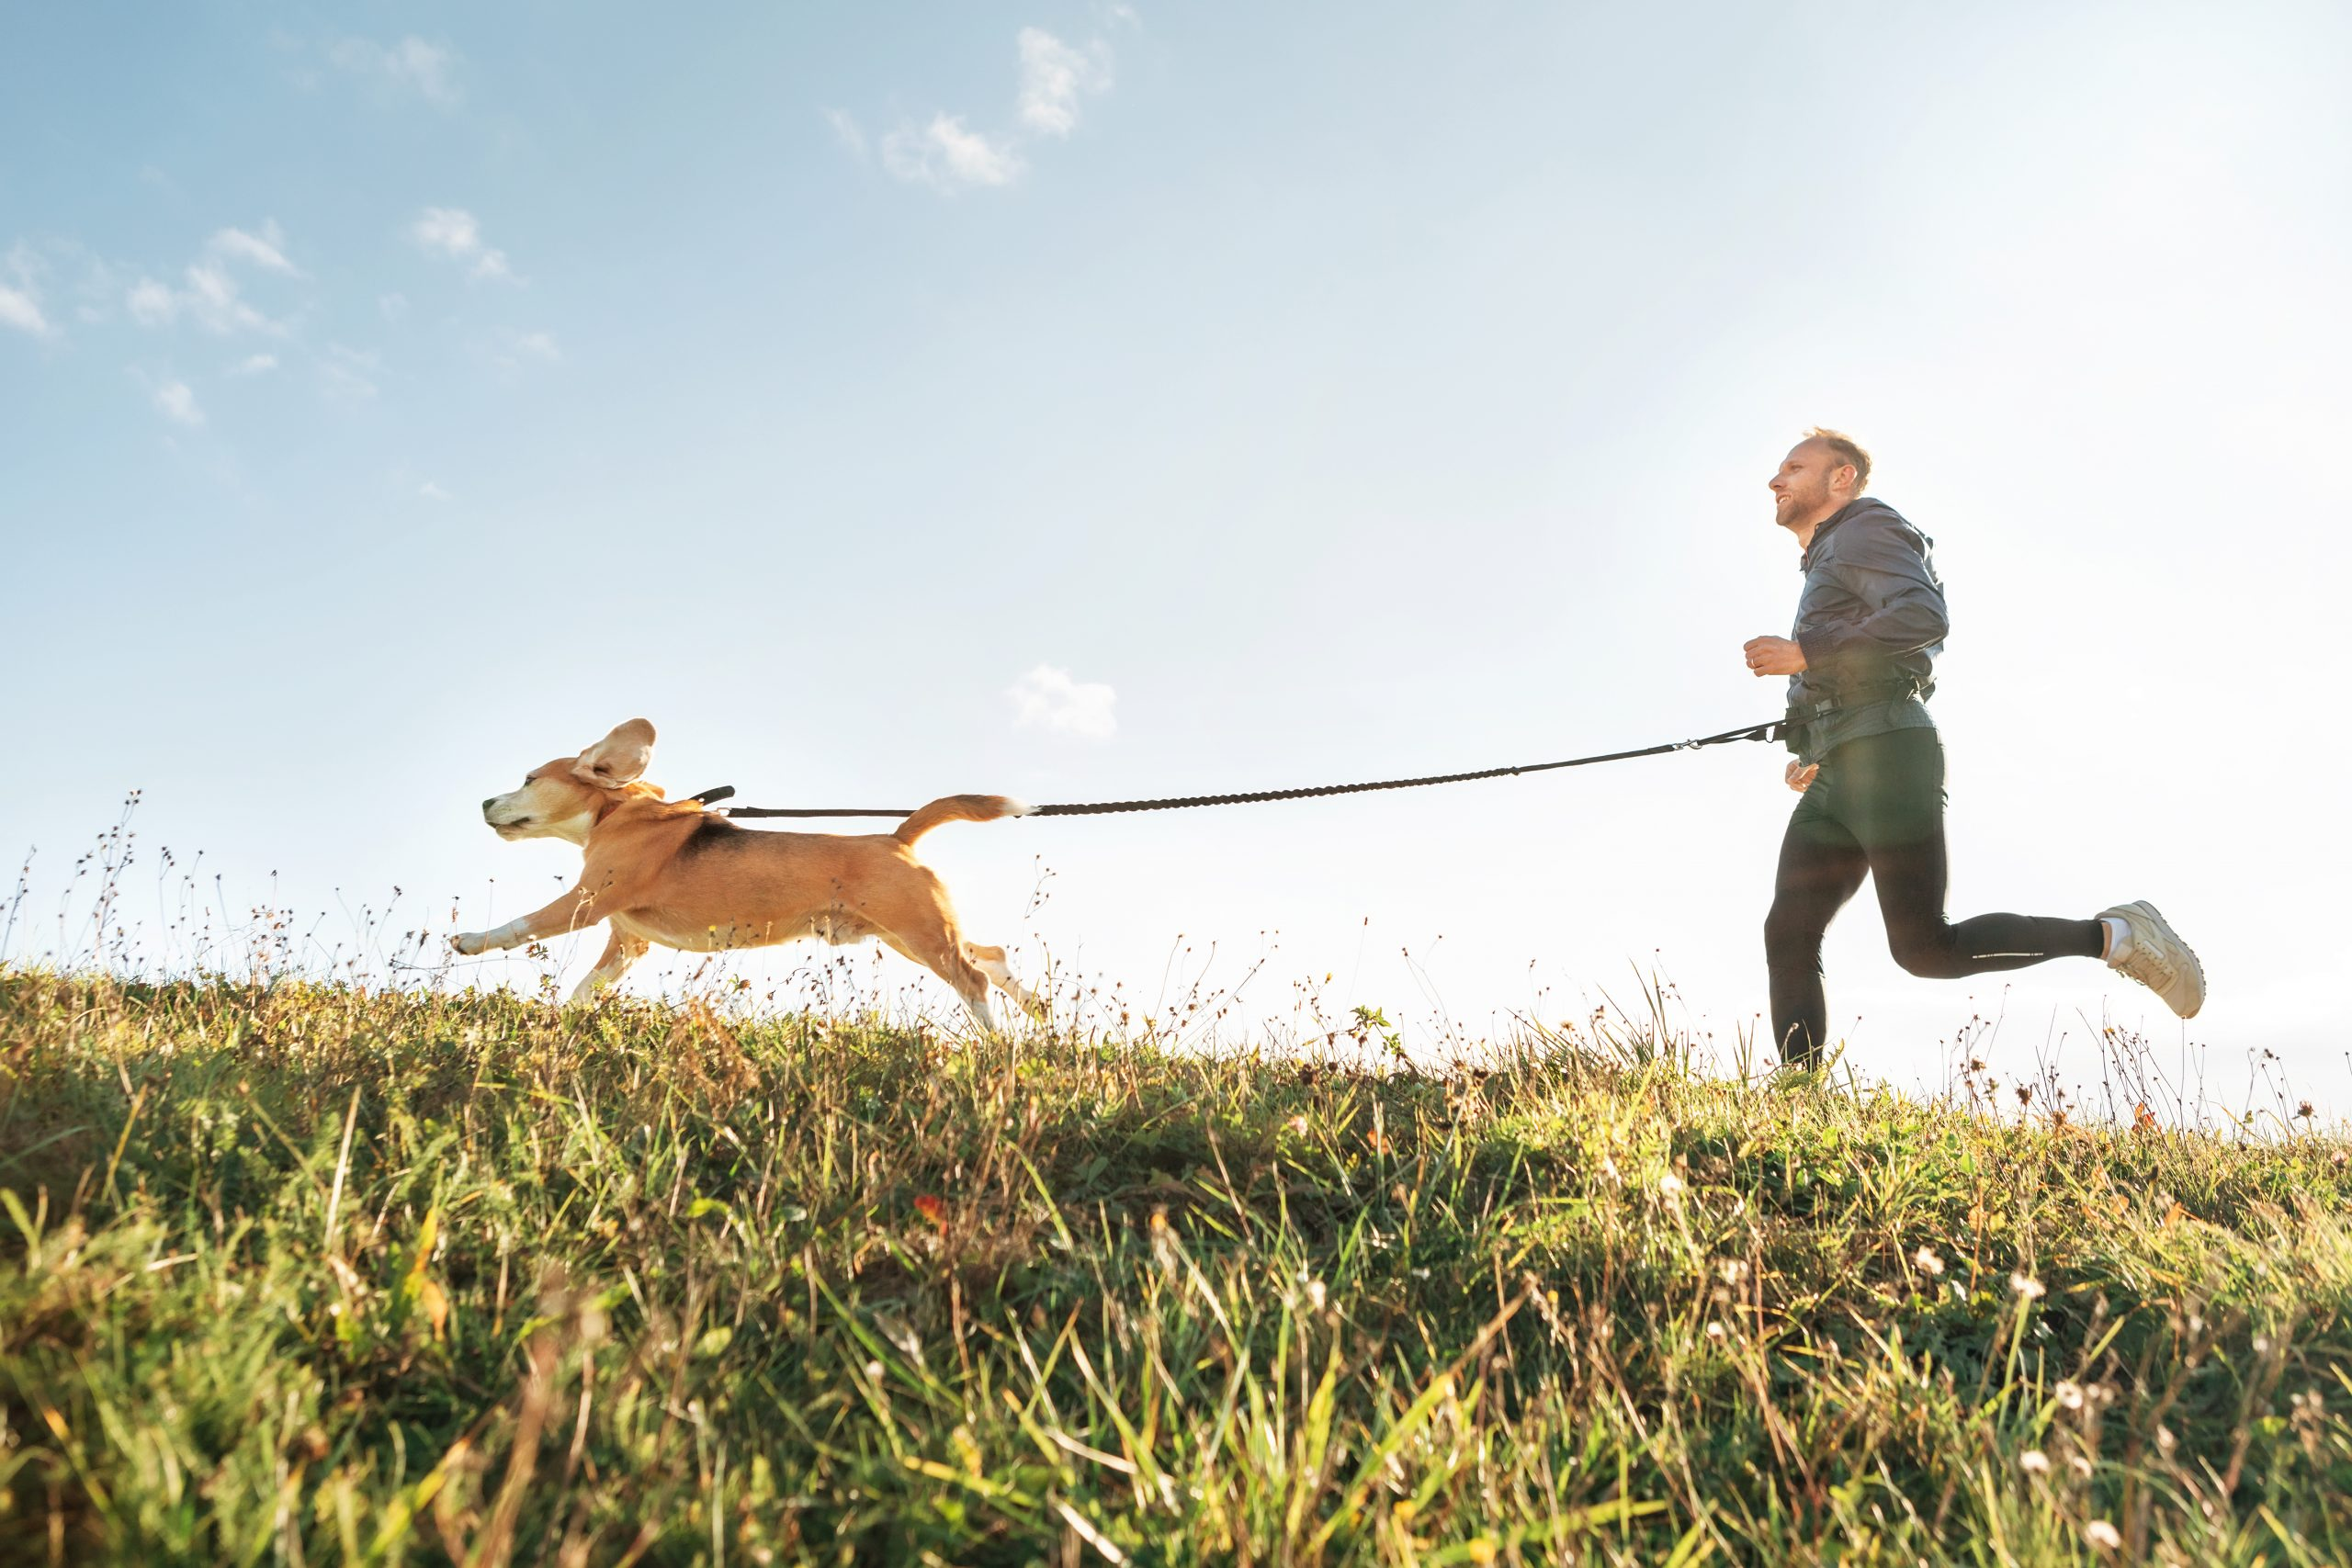 Man jogging with his dog on grass in front of blue sky